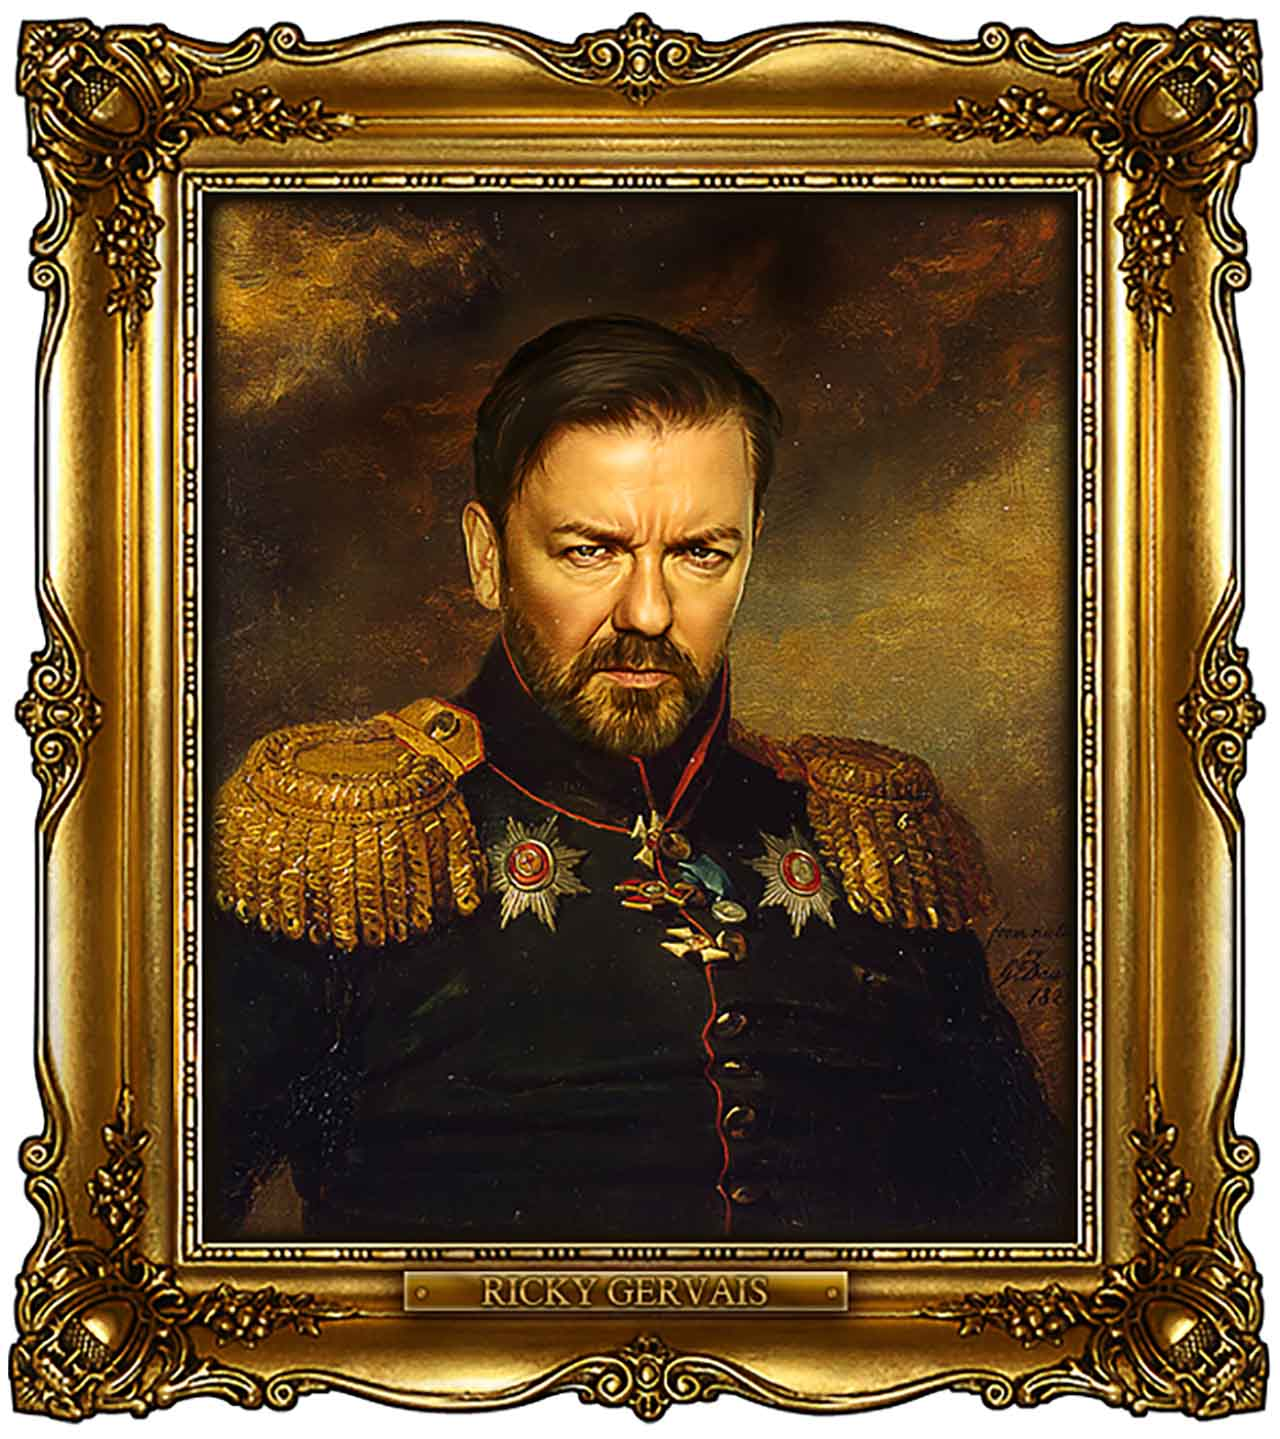 Artist Turns Famous Actors Into Russian Generals - Ricky Gervais